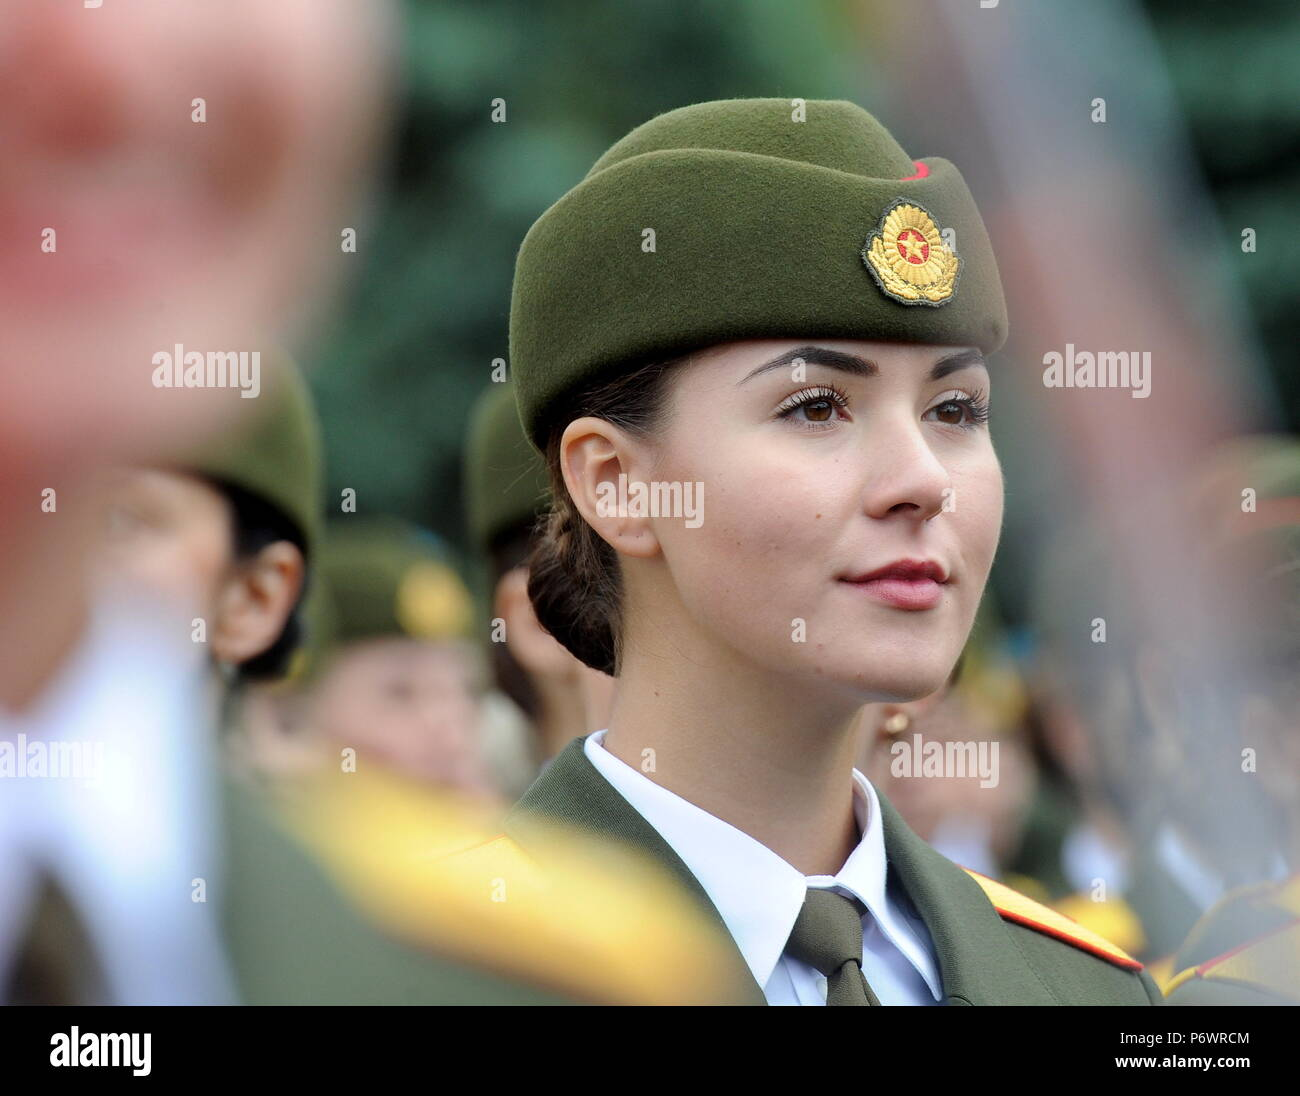 Minsk, Belarus. 03rd July, 2018. MINSK, BELARUS - JULY 3, 2018: Belarusian servicewoman during a military parade marking Belarus Independence Day. Viktor Drachev/TASS Credit: ITAR-TASS News Agency/Alamy Live News - Stock Image